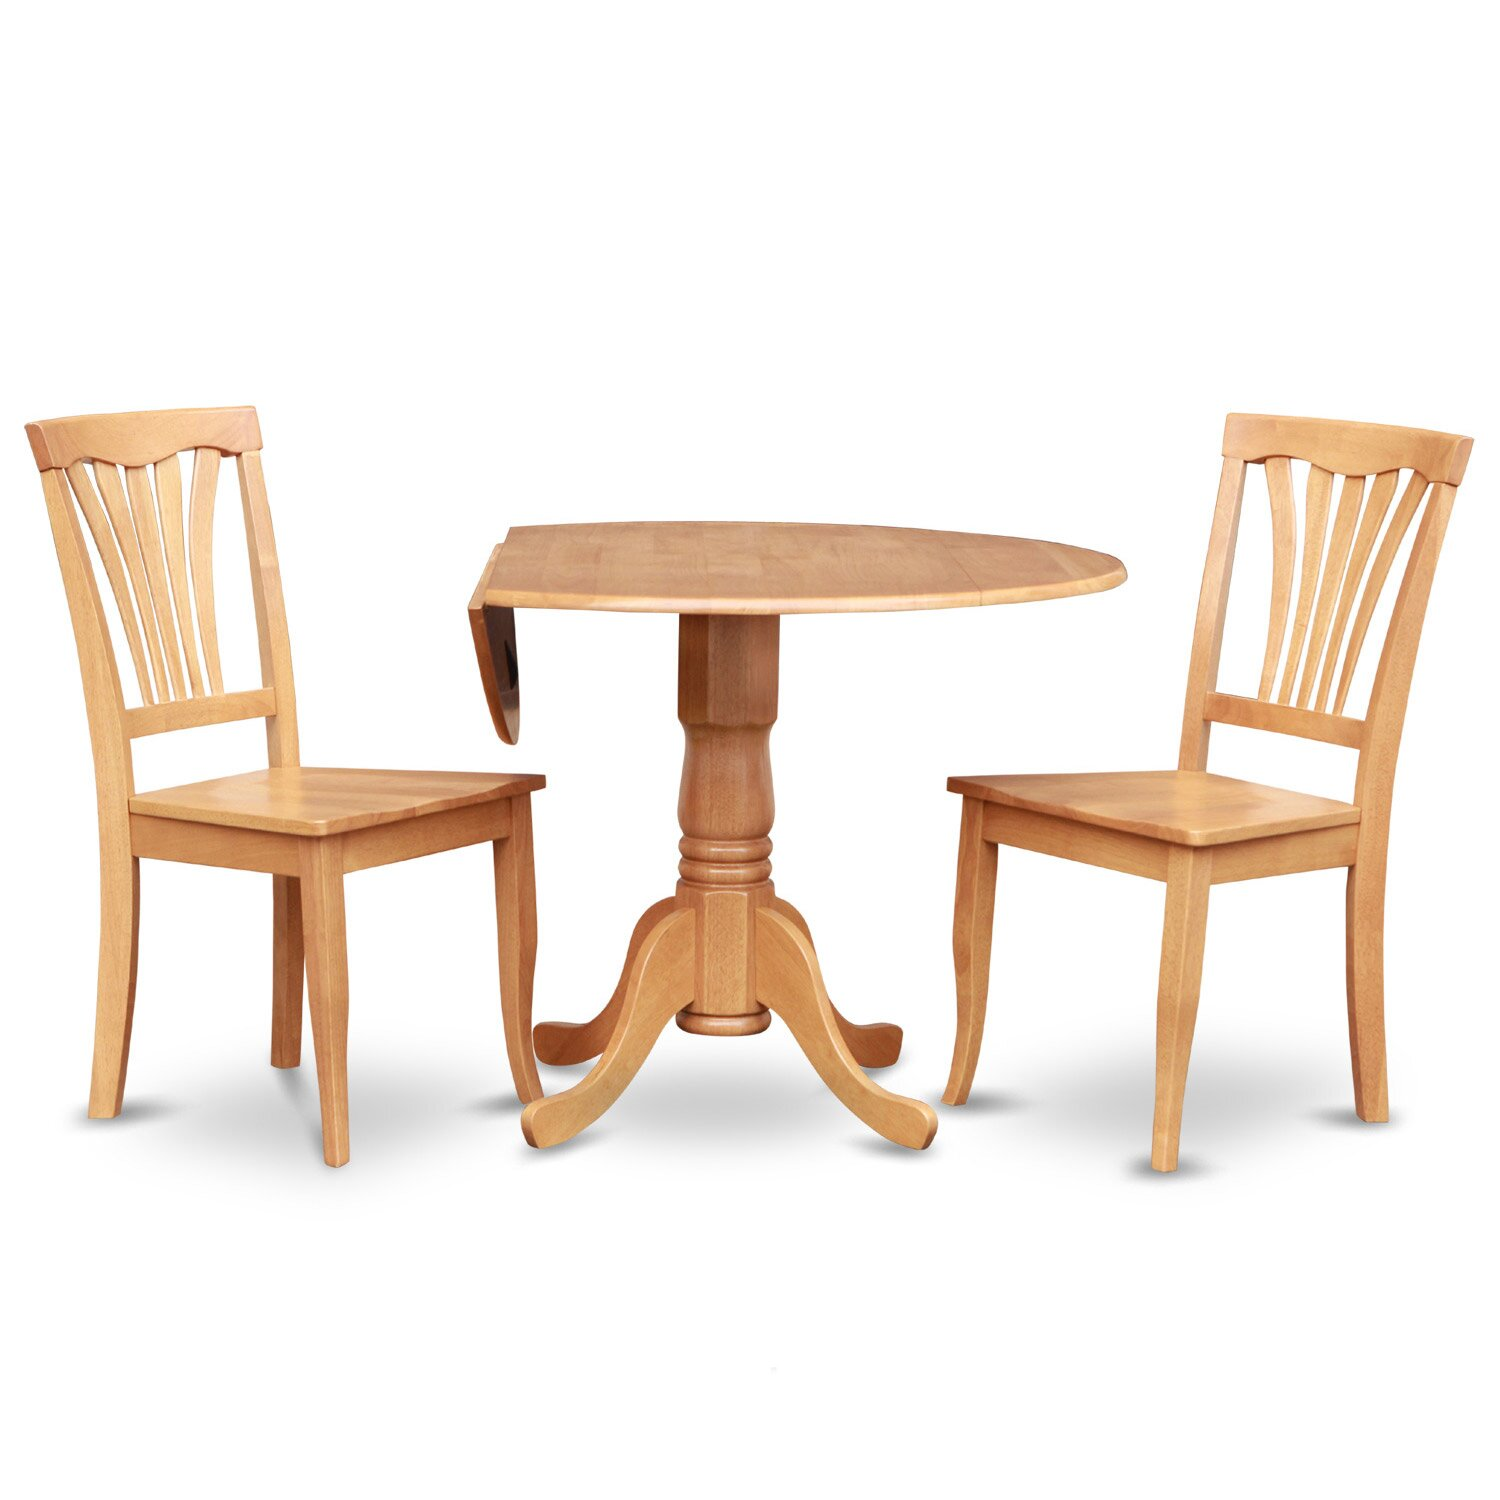 Wooden importers dublin 3 piece dining set reviews wayfair for Small wooden dining table set